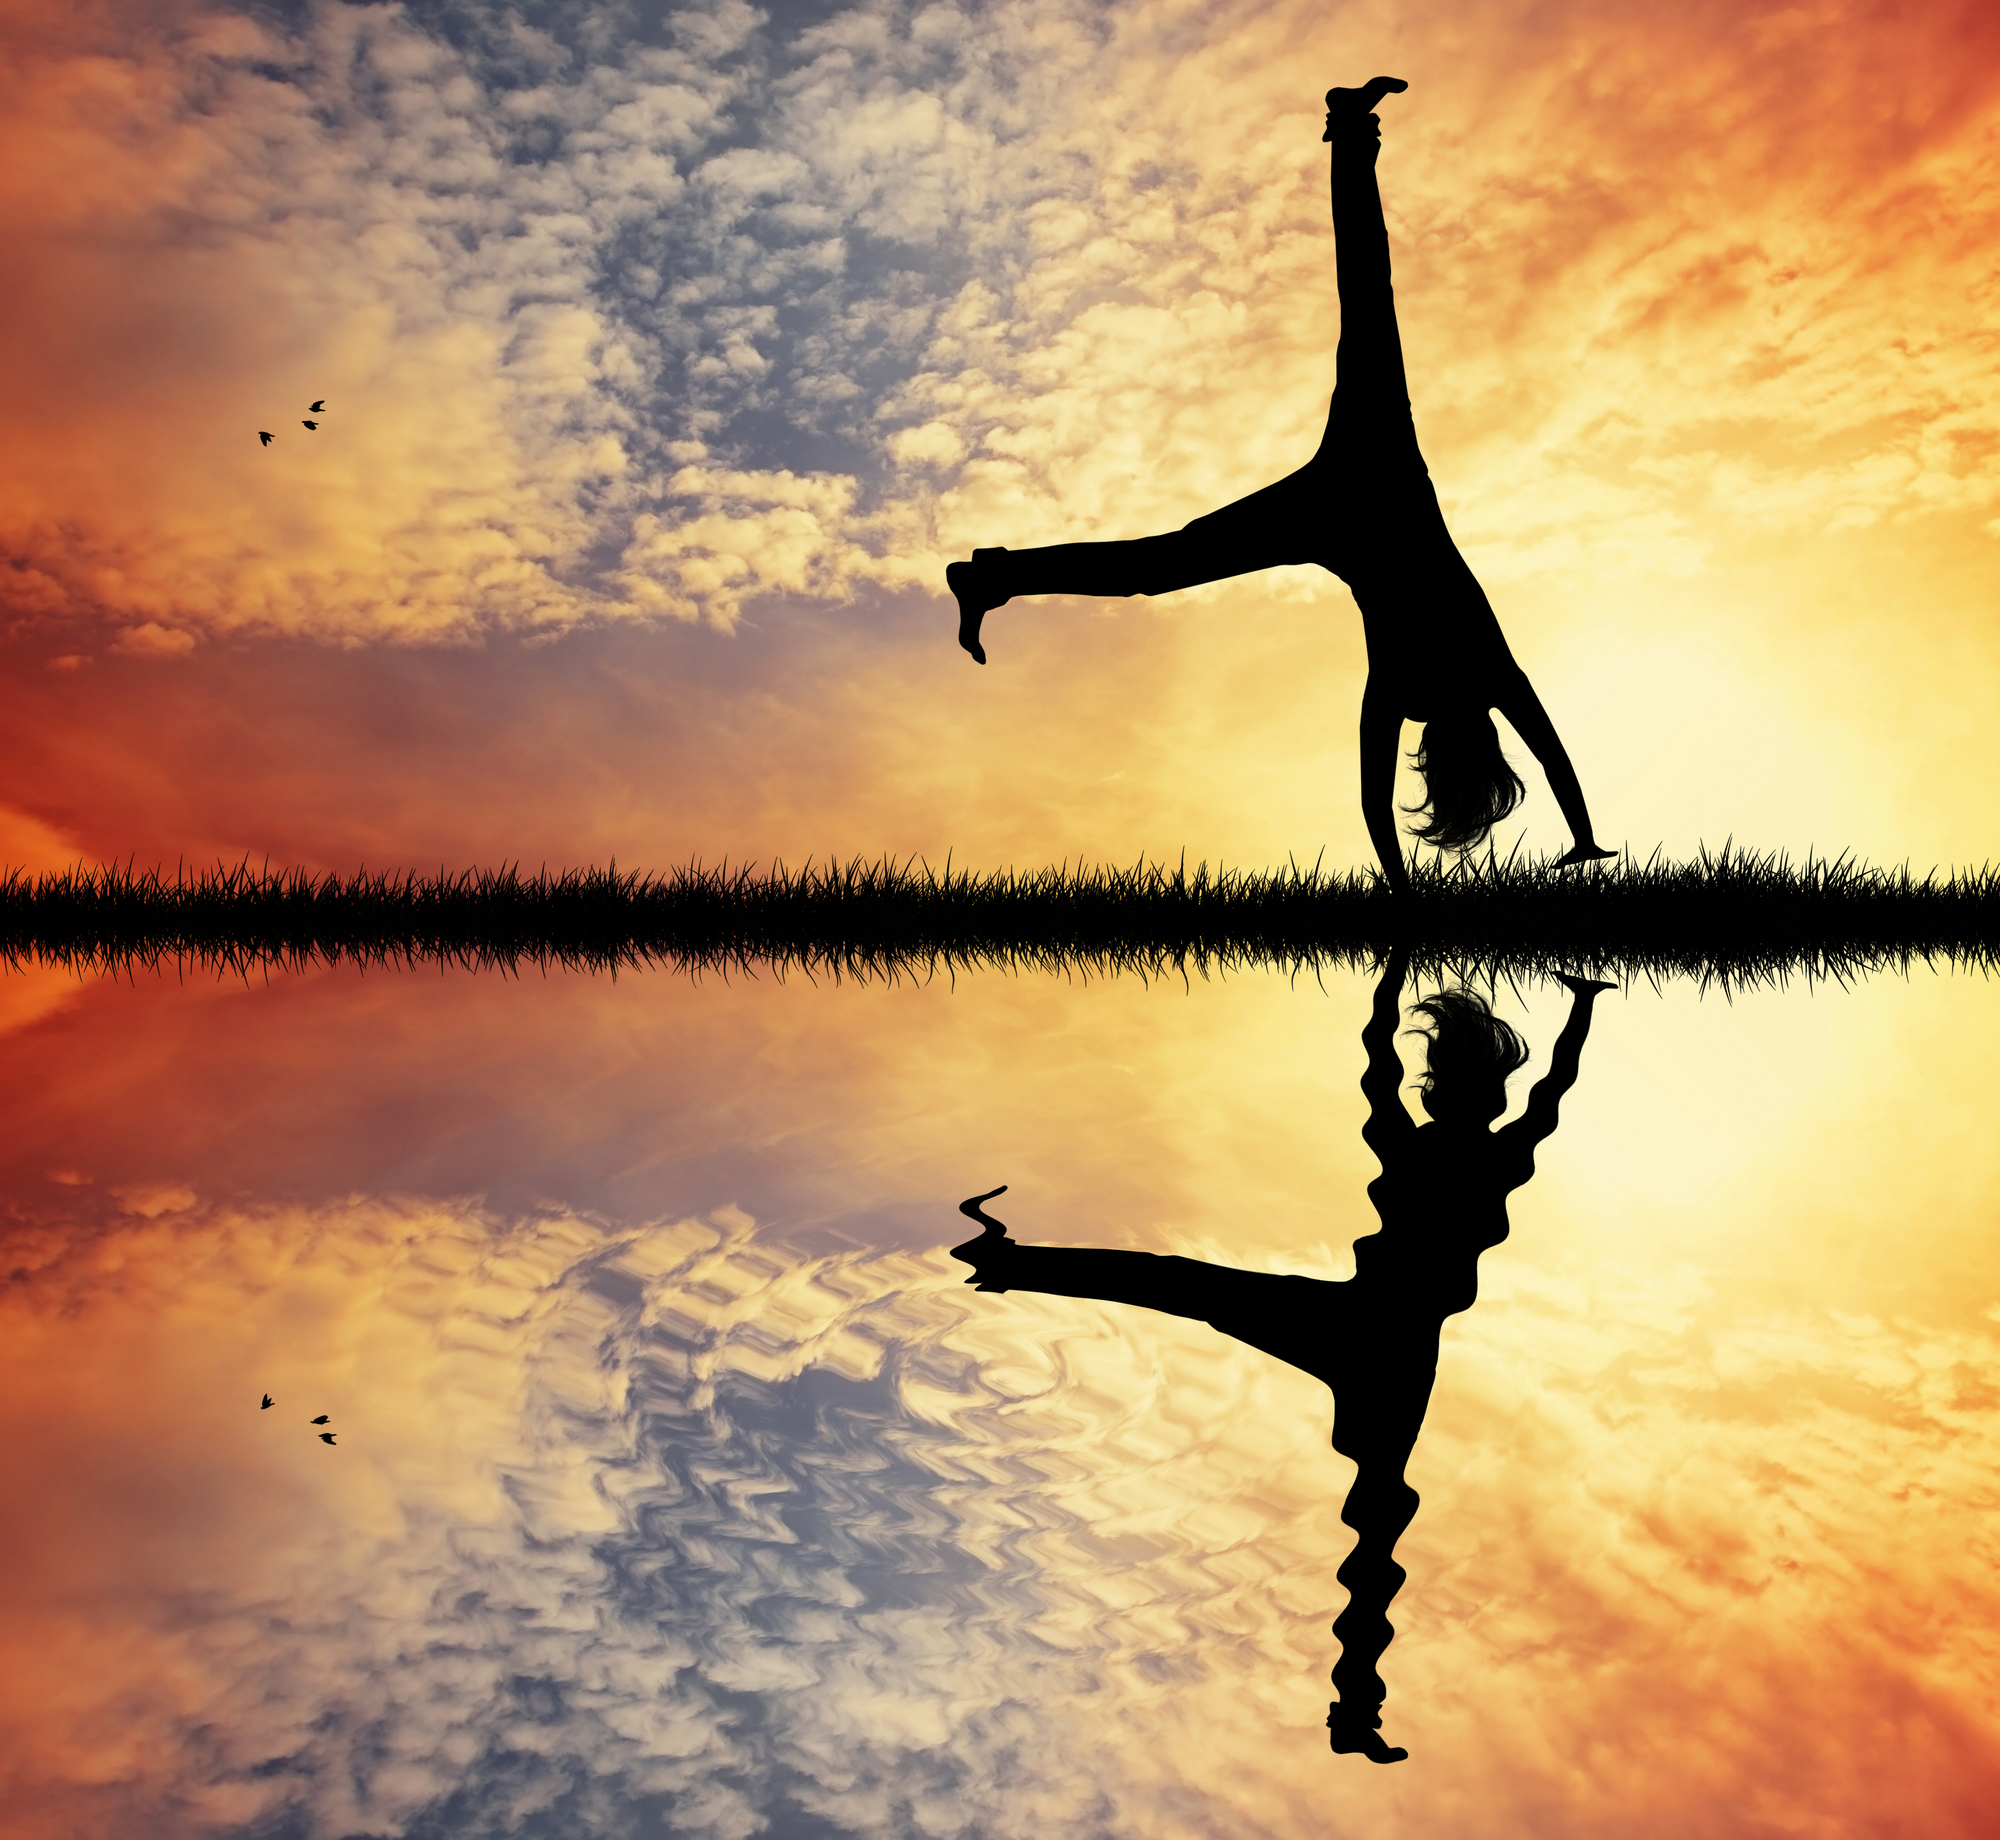 Silhouette of person cartwheeling by a lake at sunrise